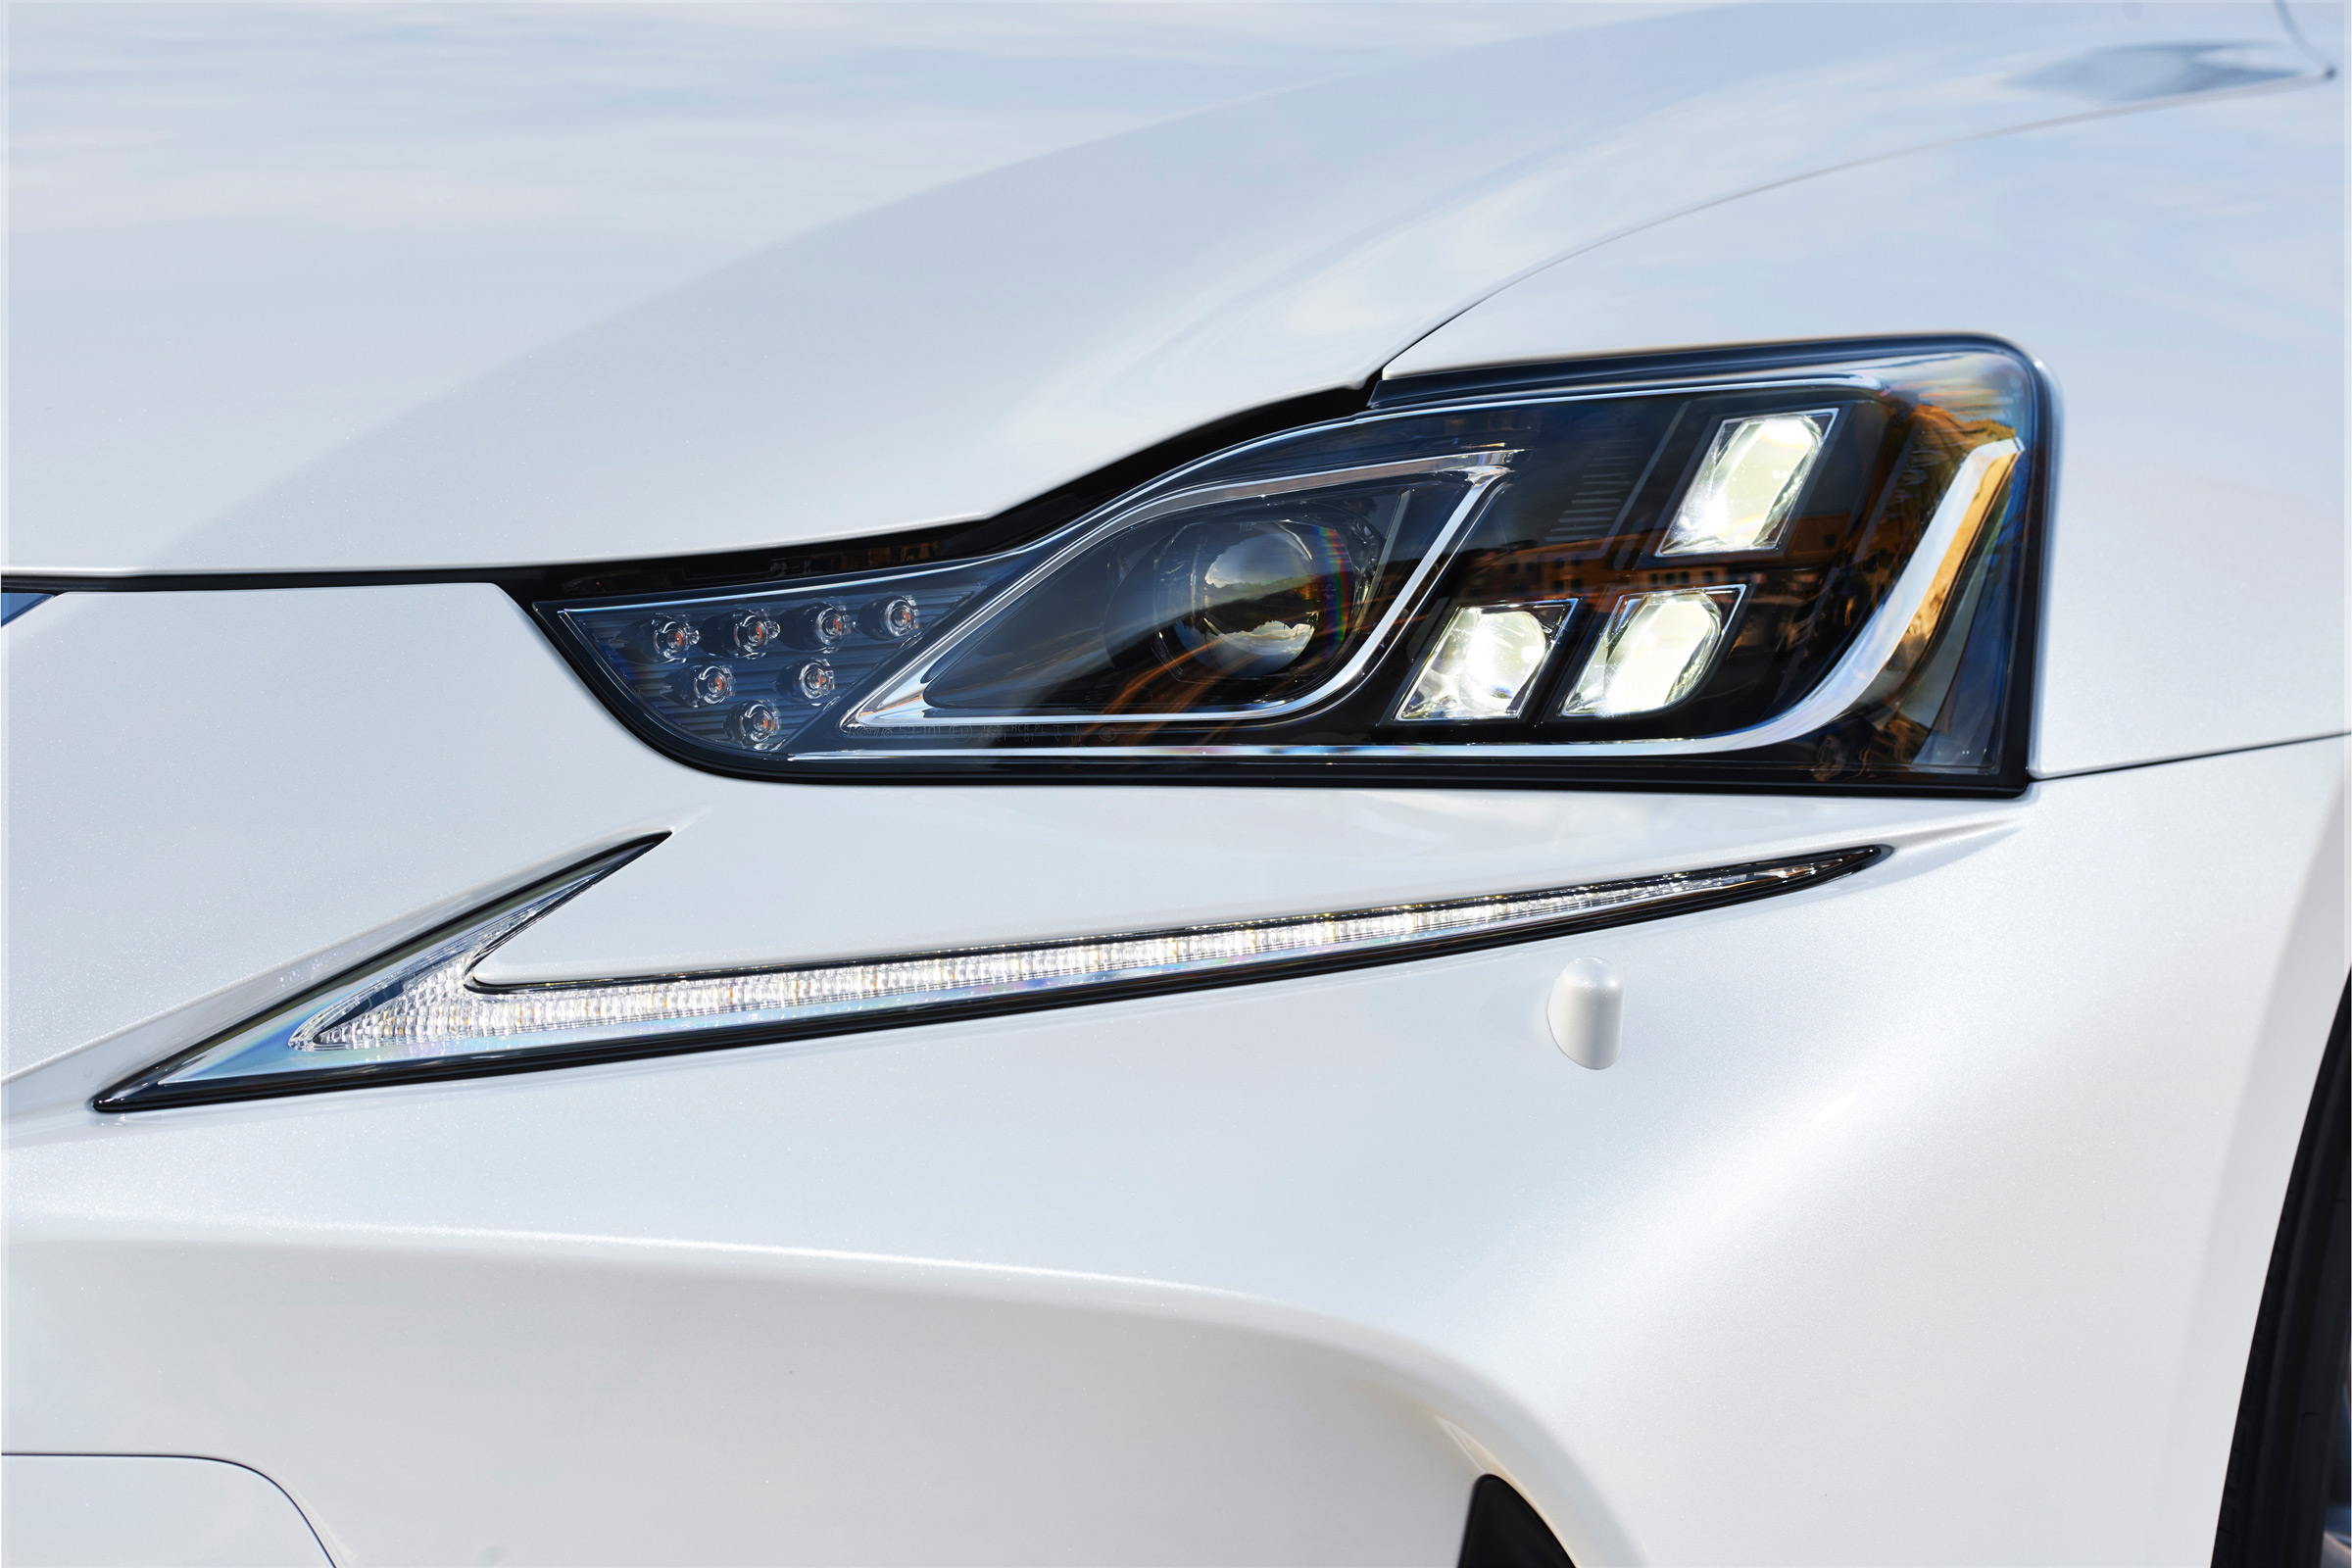 2017 Lexus IS 300h White Exterior View Headlight (View 5 of 13)